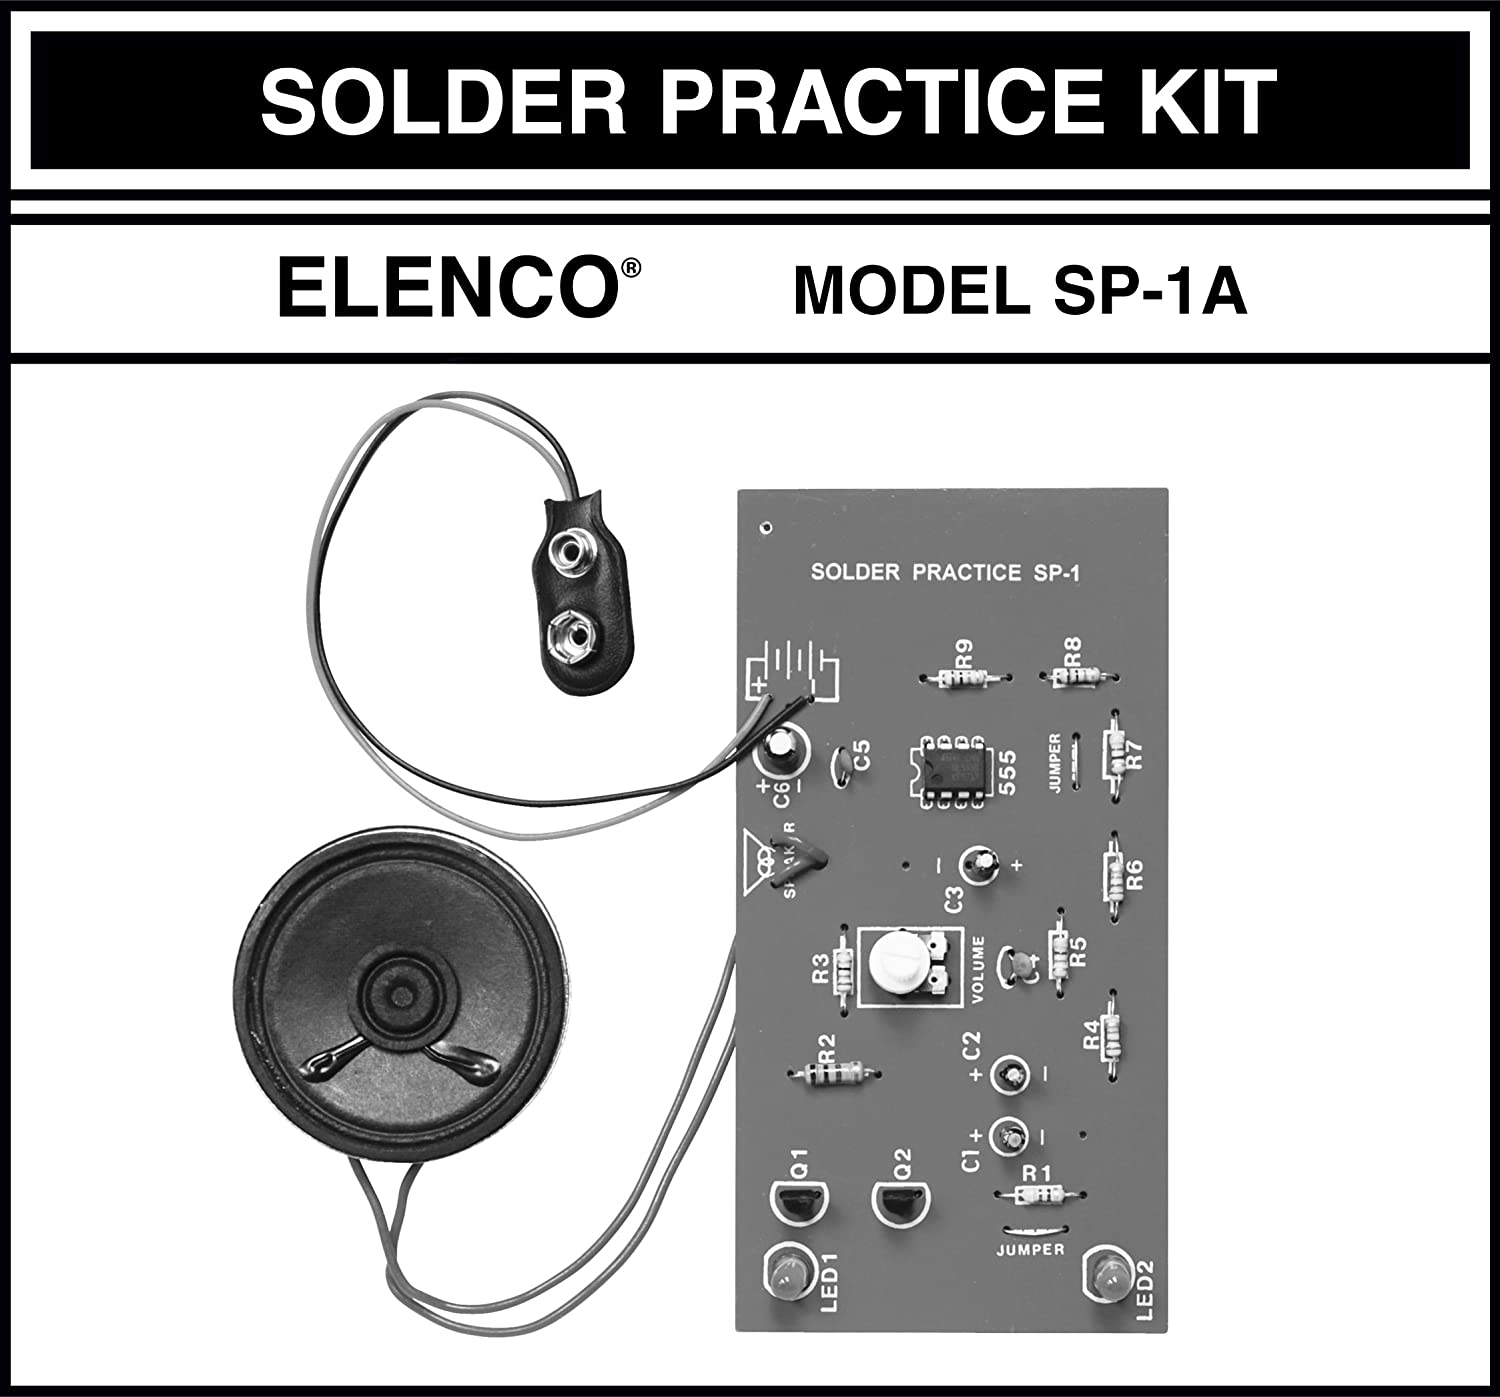 Elenco Practical Soldering Project Kit Toys Games Selling Leads Sell Pcba Printed Circuit Board Assembly